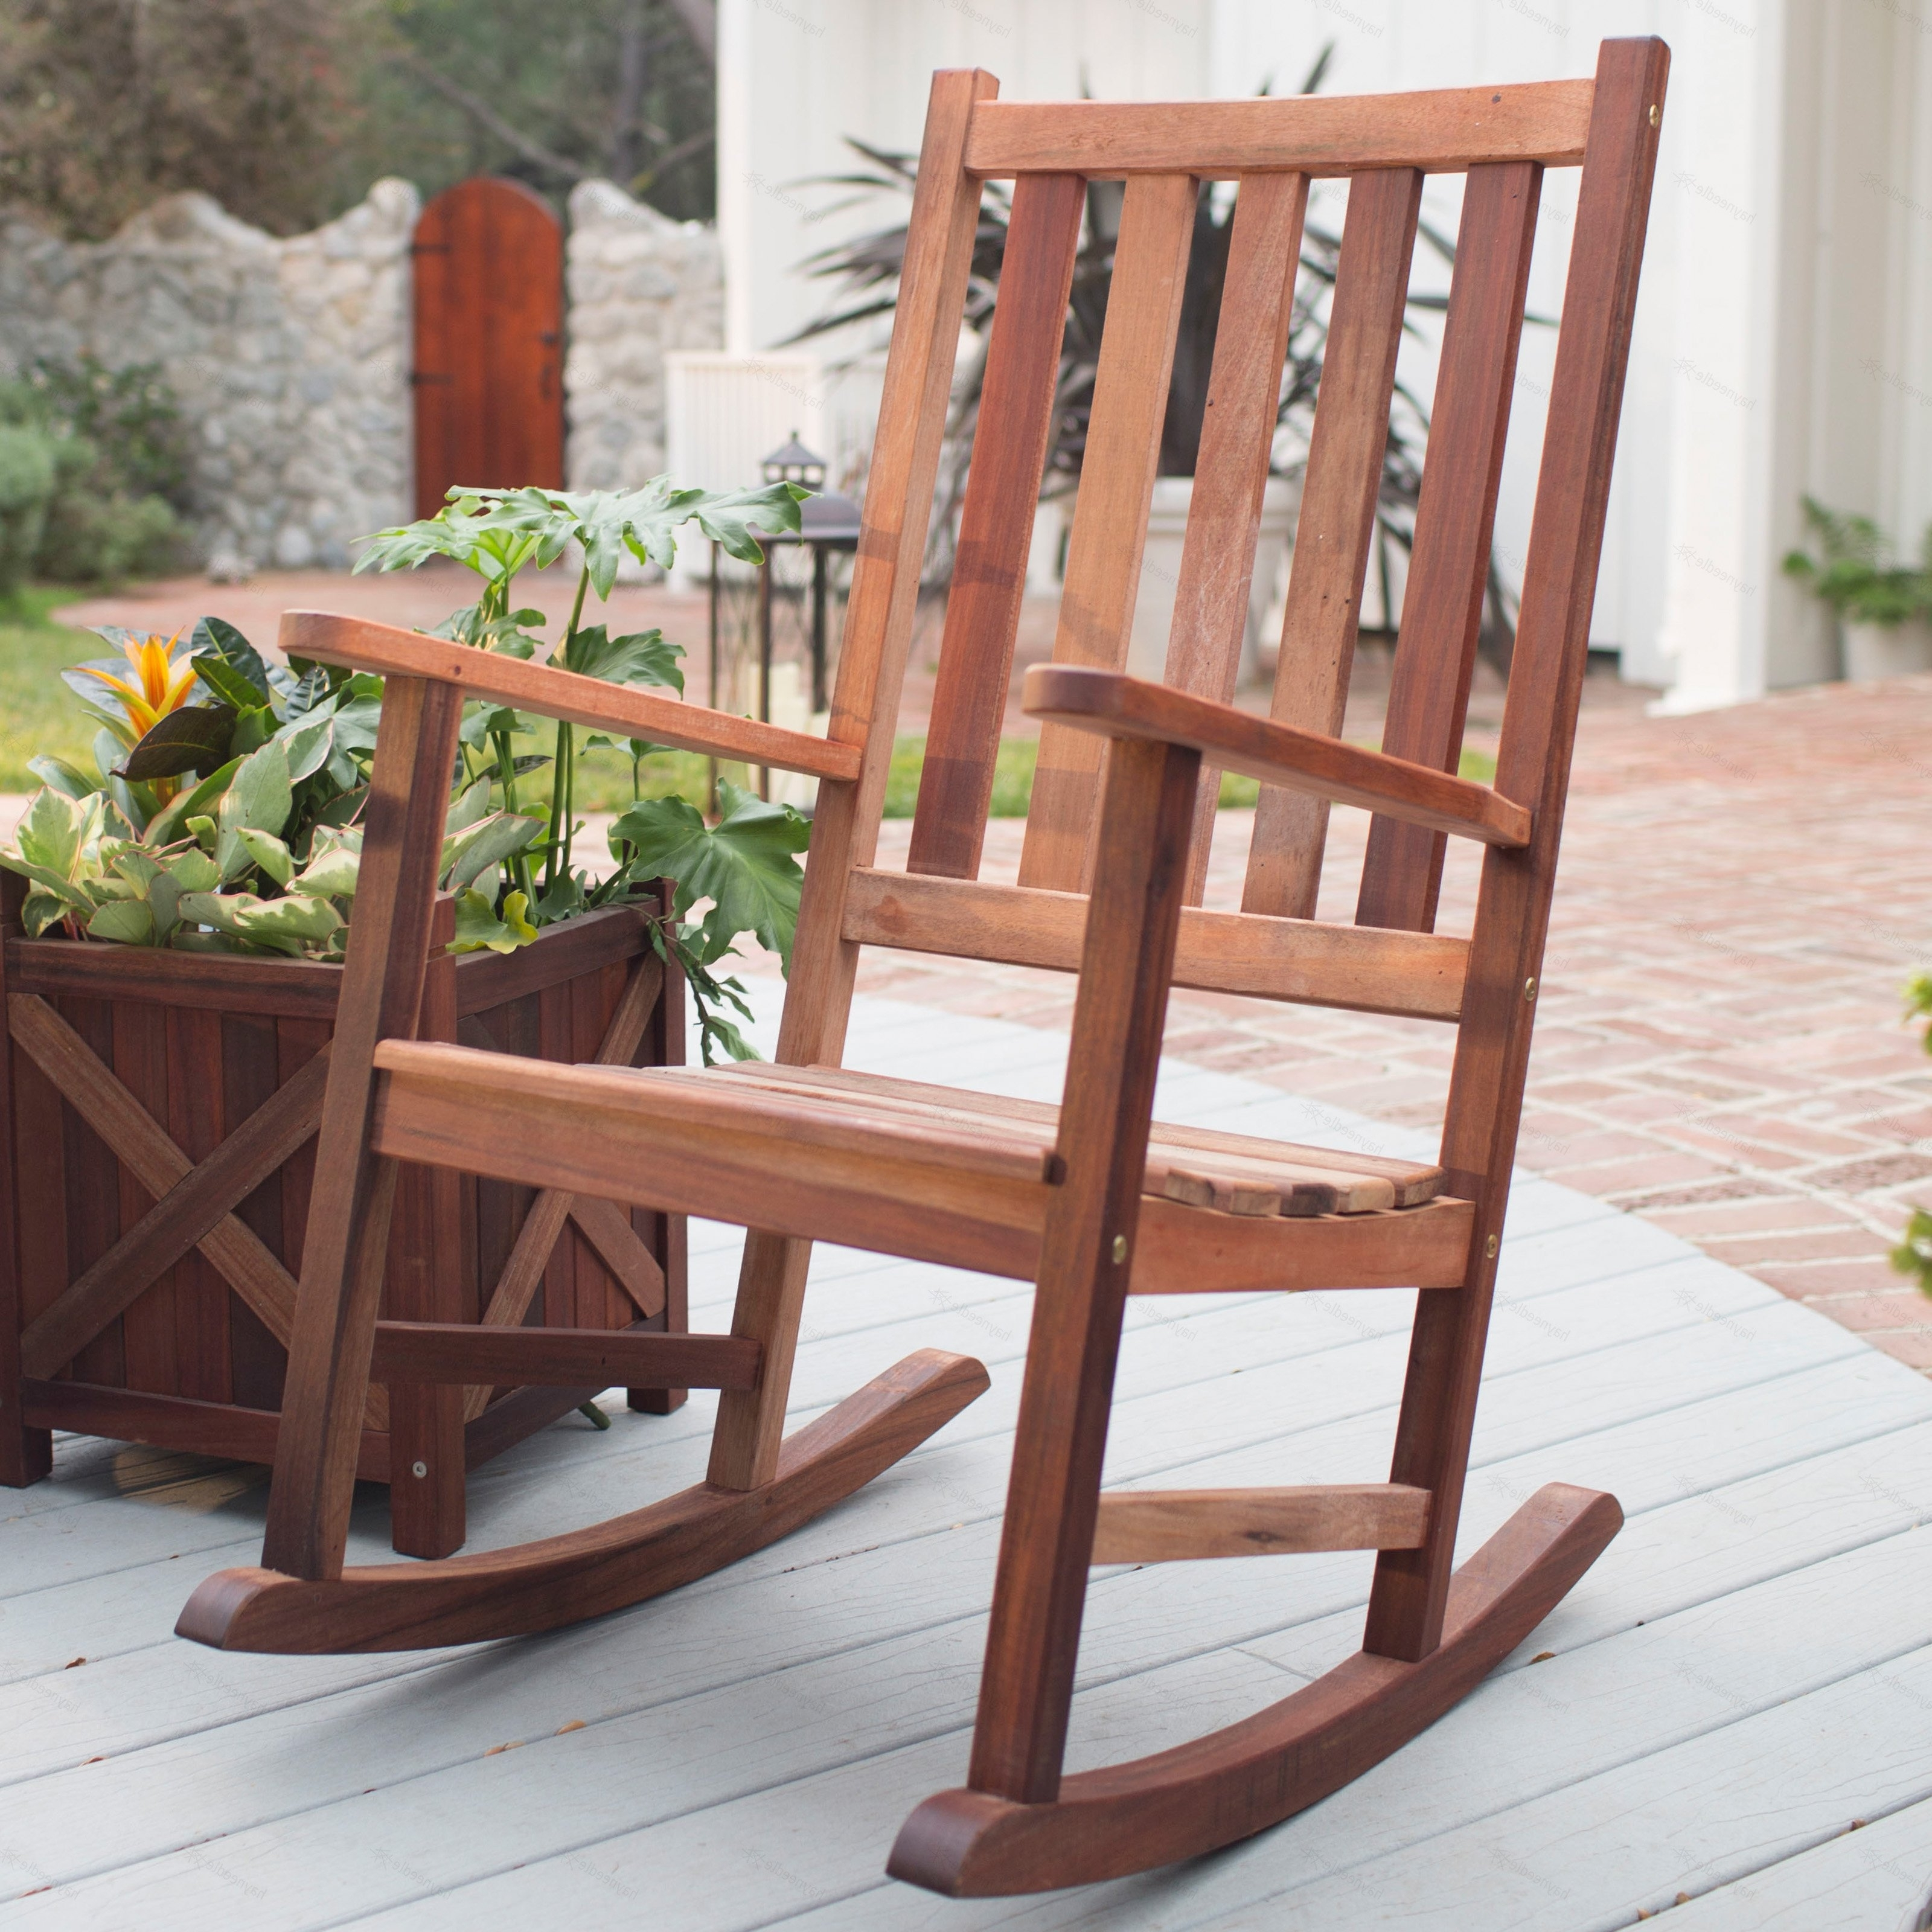 Most Recently Released Patio & Garden : Outdoor Rocking Chair Cushions Cracker Barrel In Rocking Chair Cushions For Outdoor (View 8 of 15)